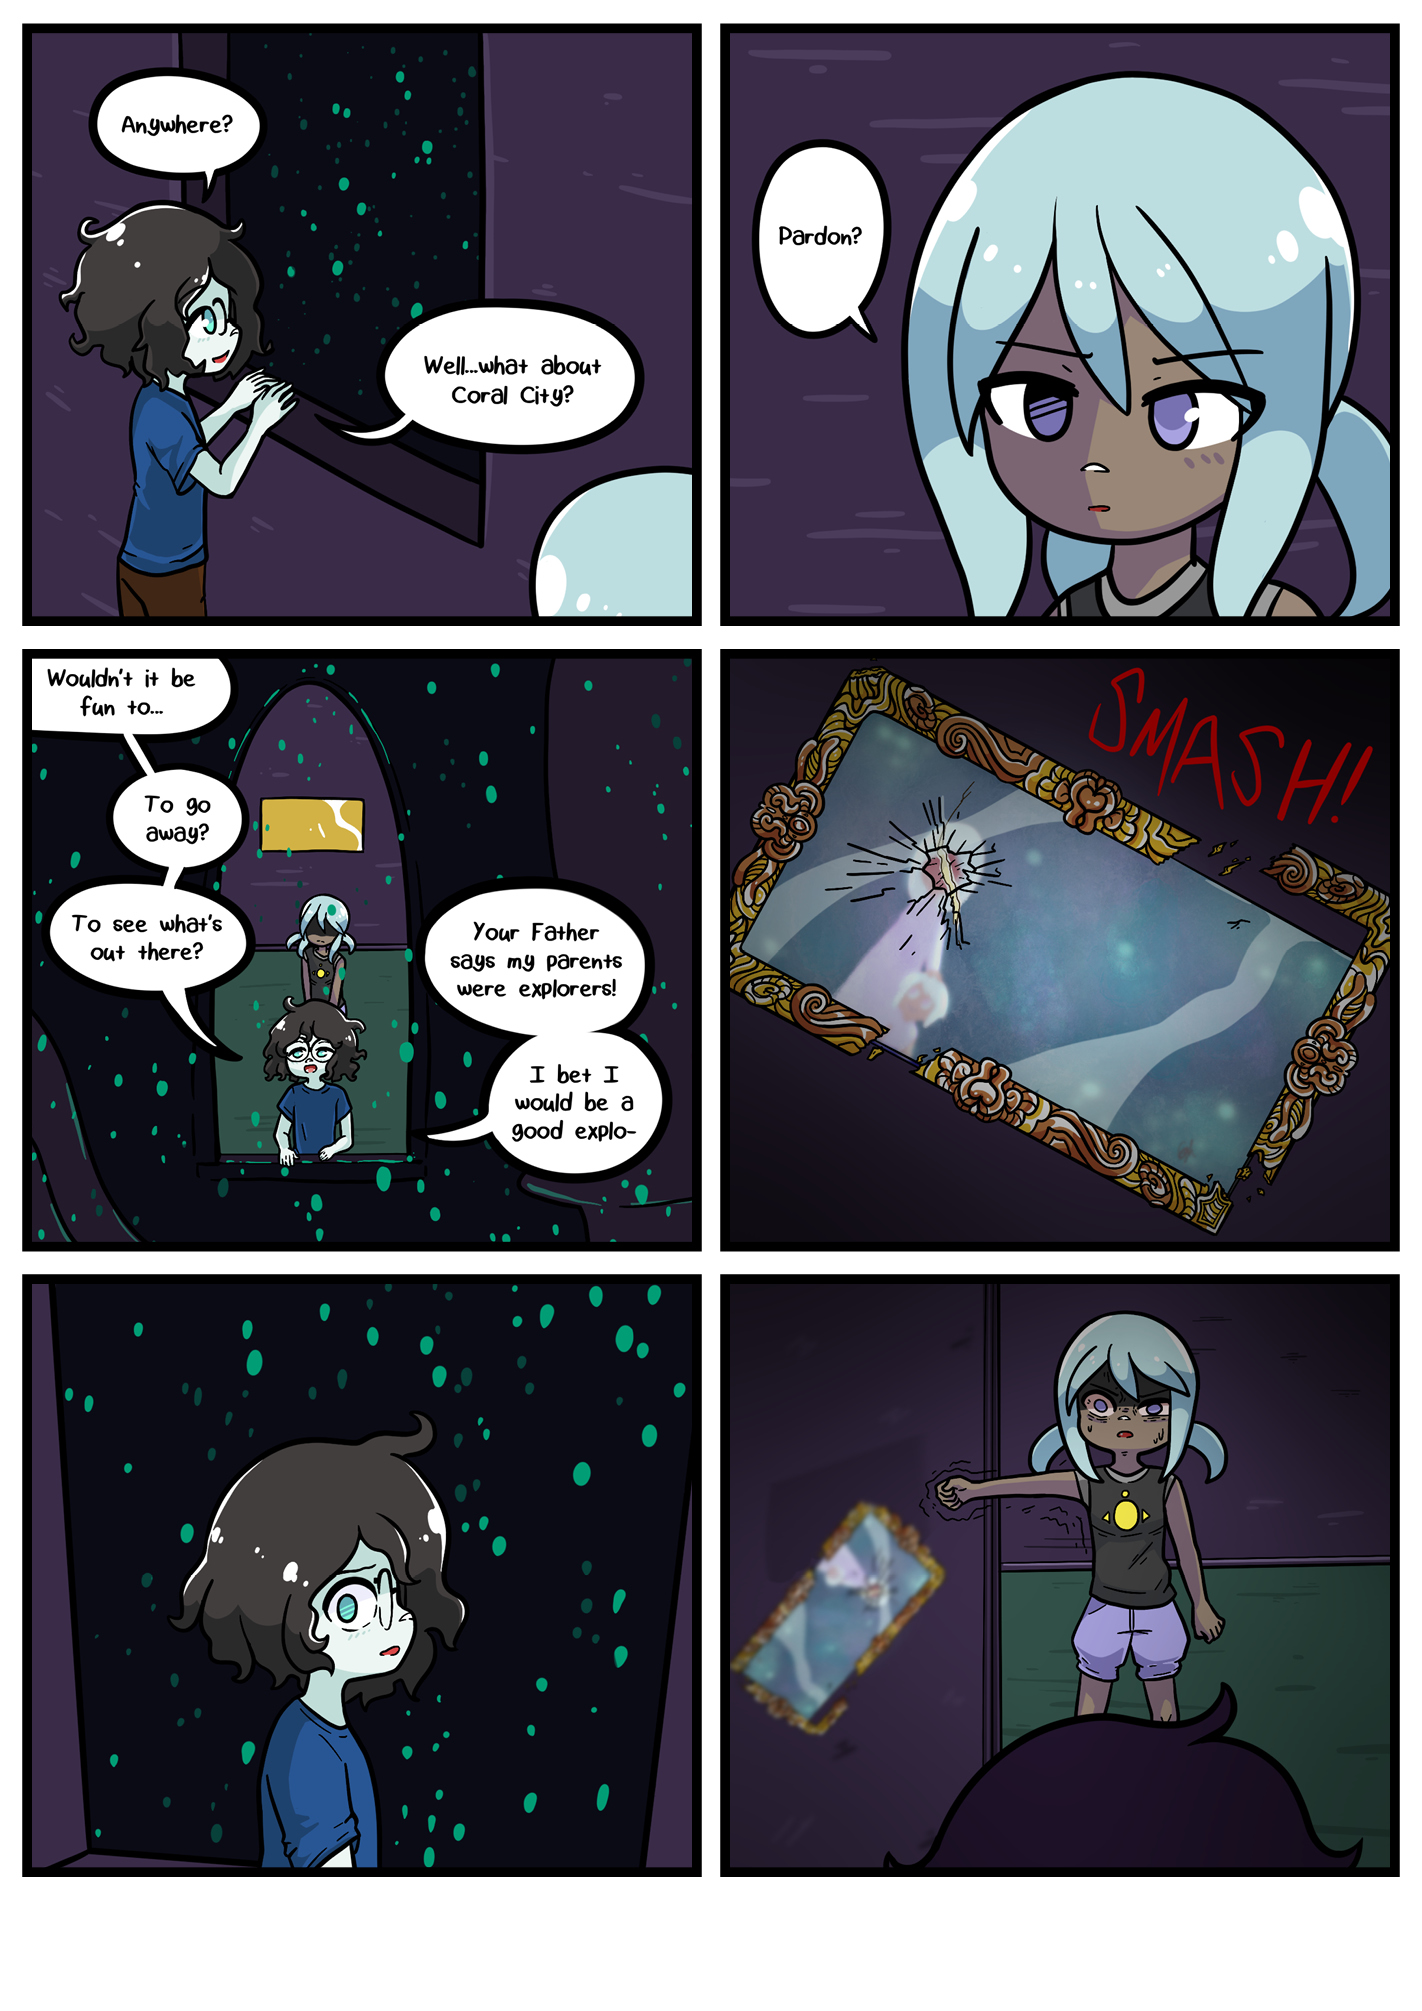 Seasick the underwater adventure comic, chapter 2 page 60 full